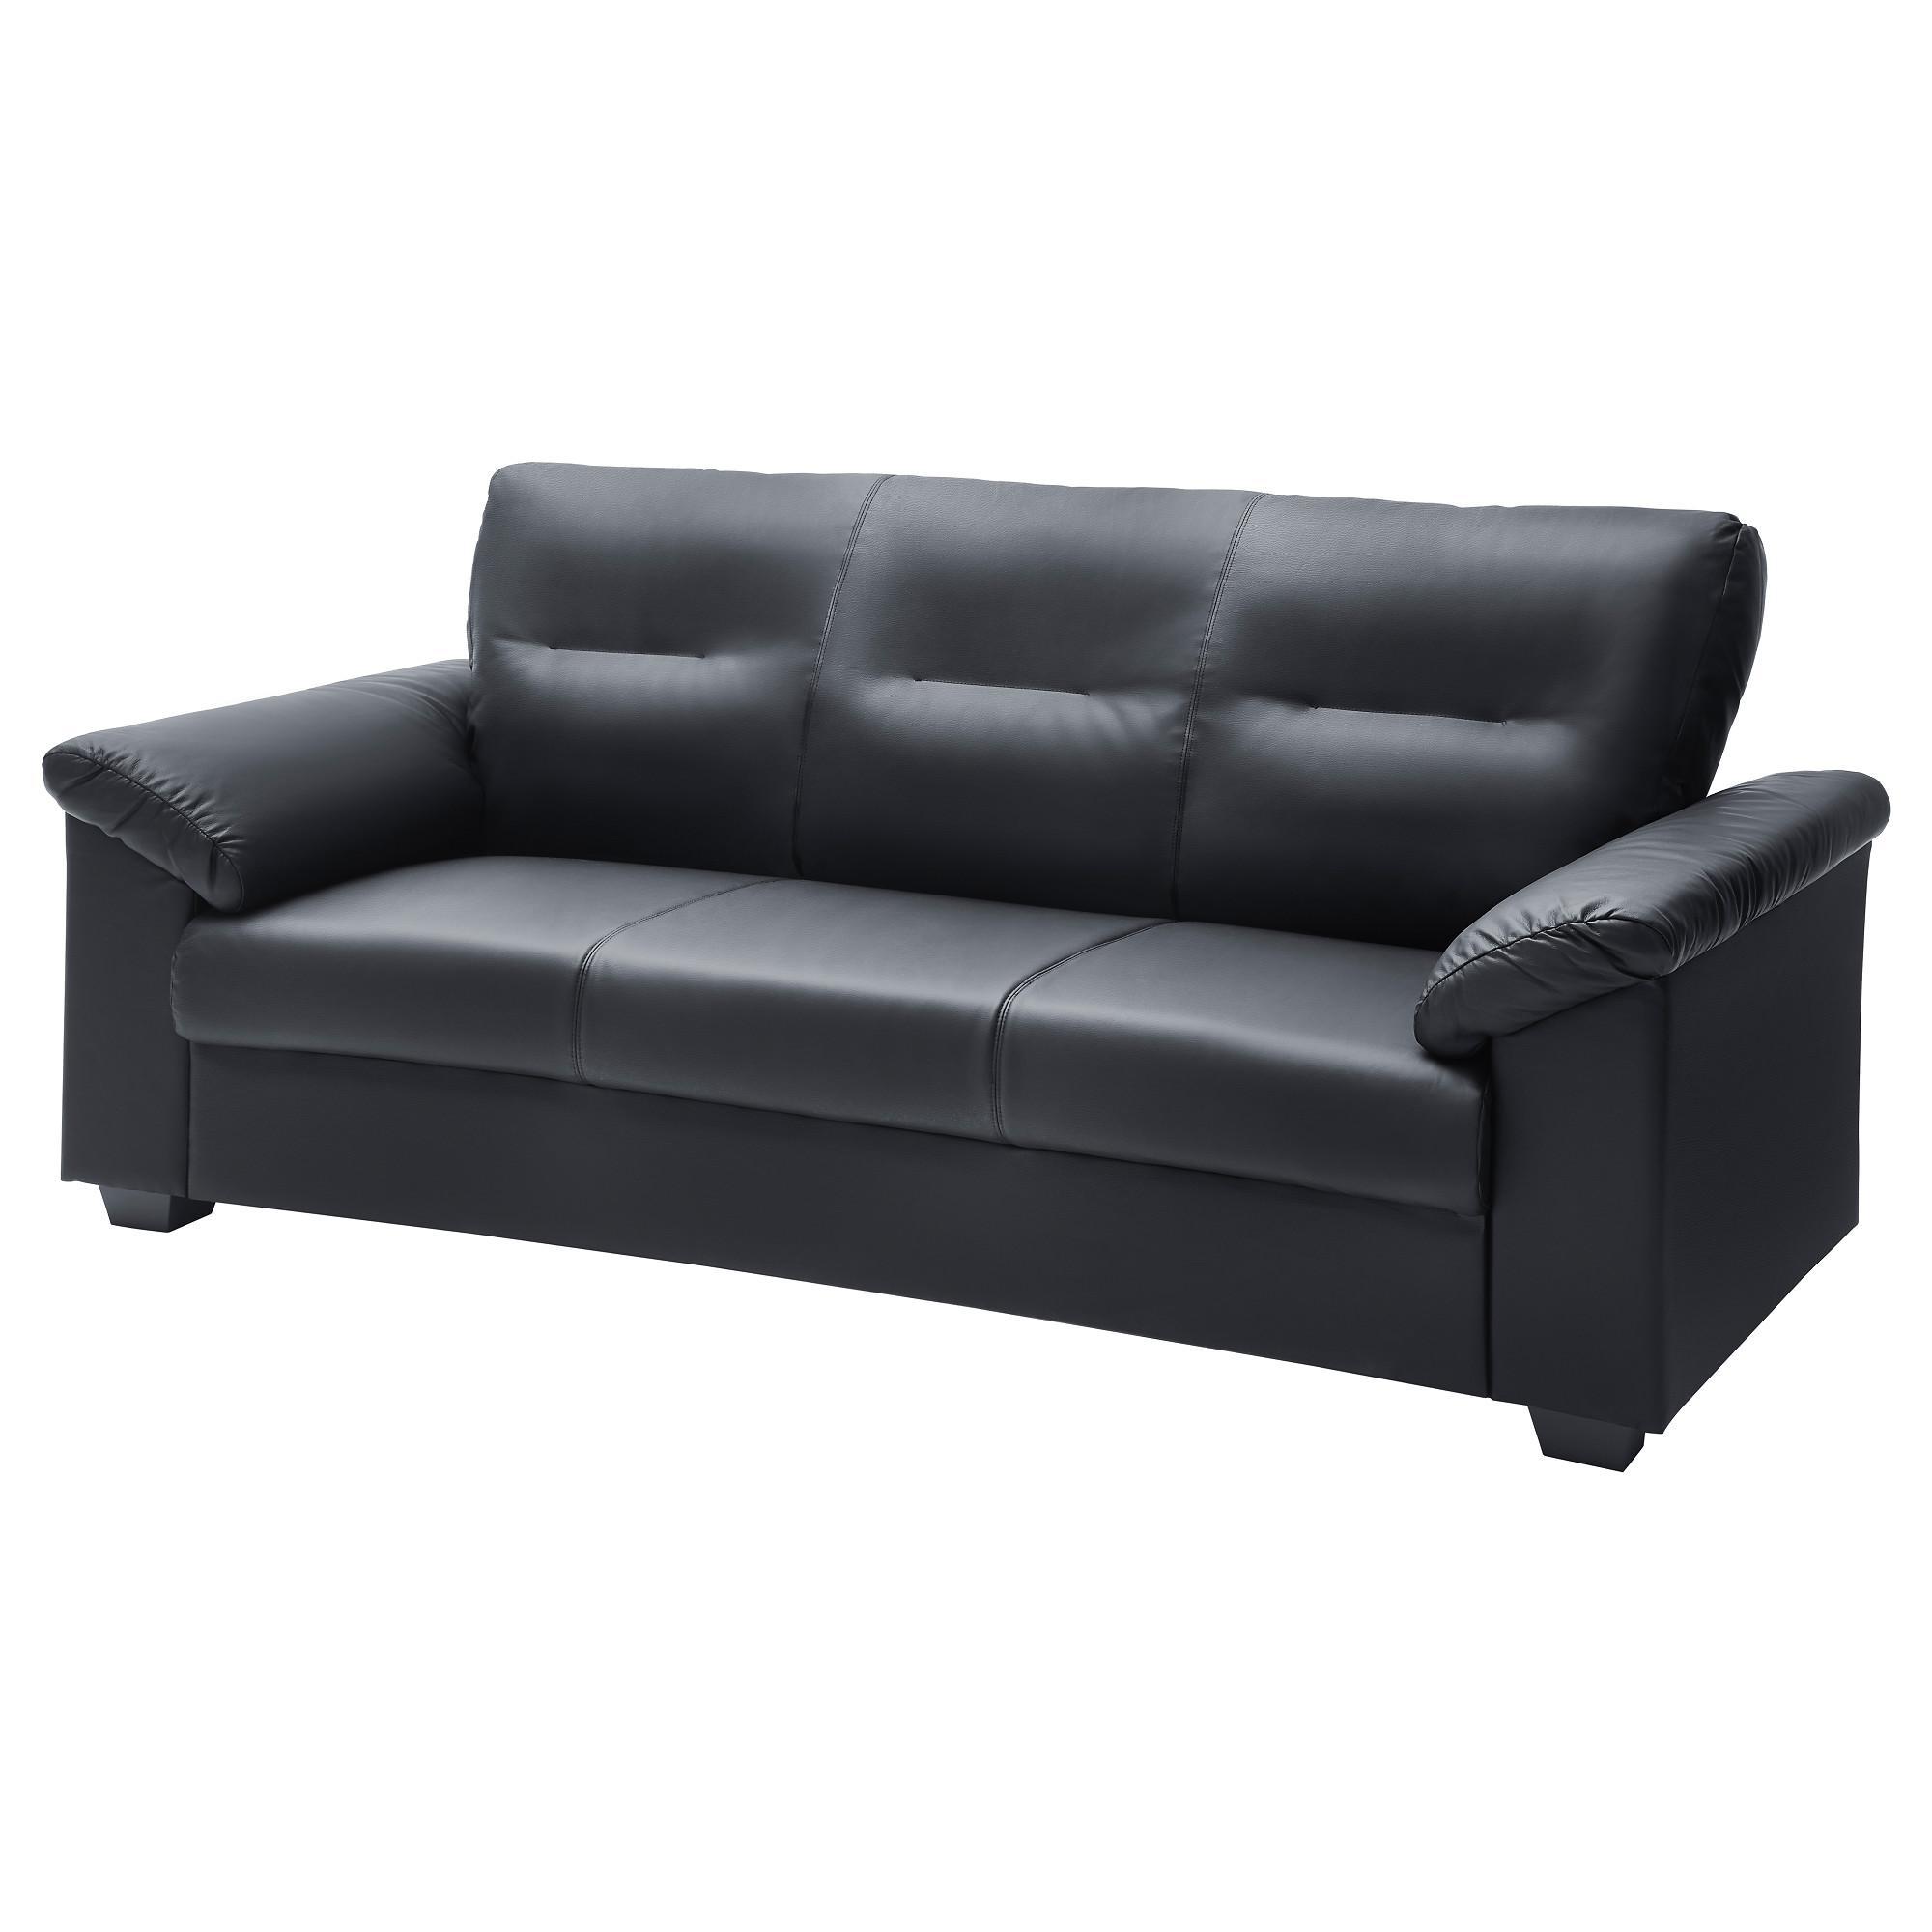 Inspirational Modern Black Leather Sofa 96 Contemporary Sofa With Contemporary Black Leather Sofas (Image 8 of 20)